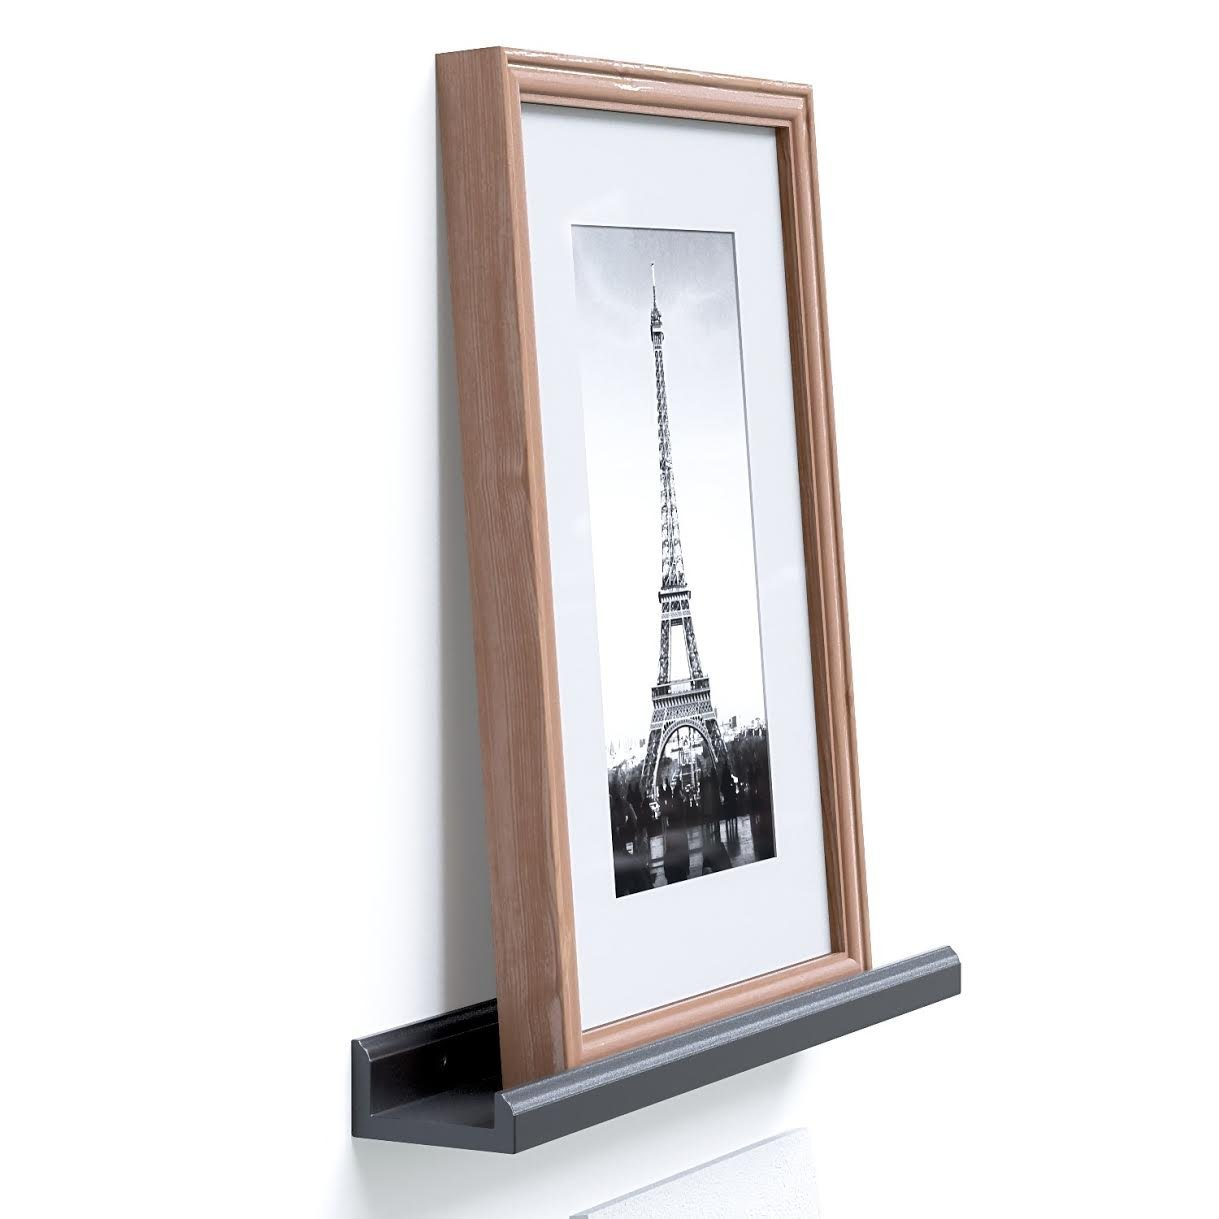 Wallniture Boston Contemporary 22 Inch Picture Ledge - Wall Mounted Floating Bookshelf for Kids Room (Black)